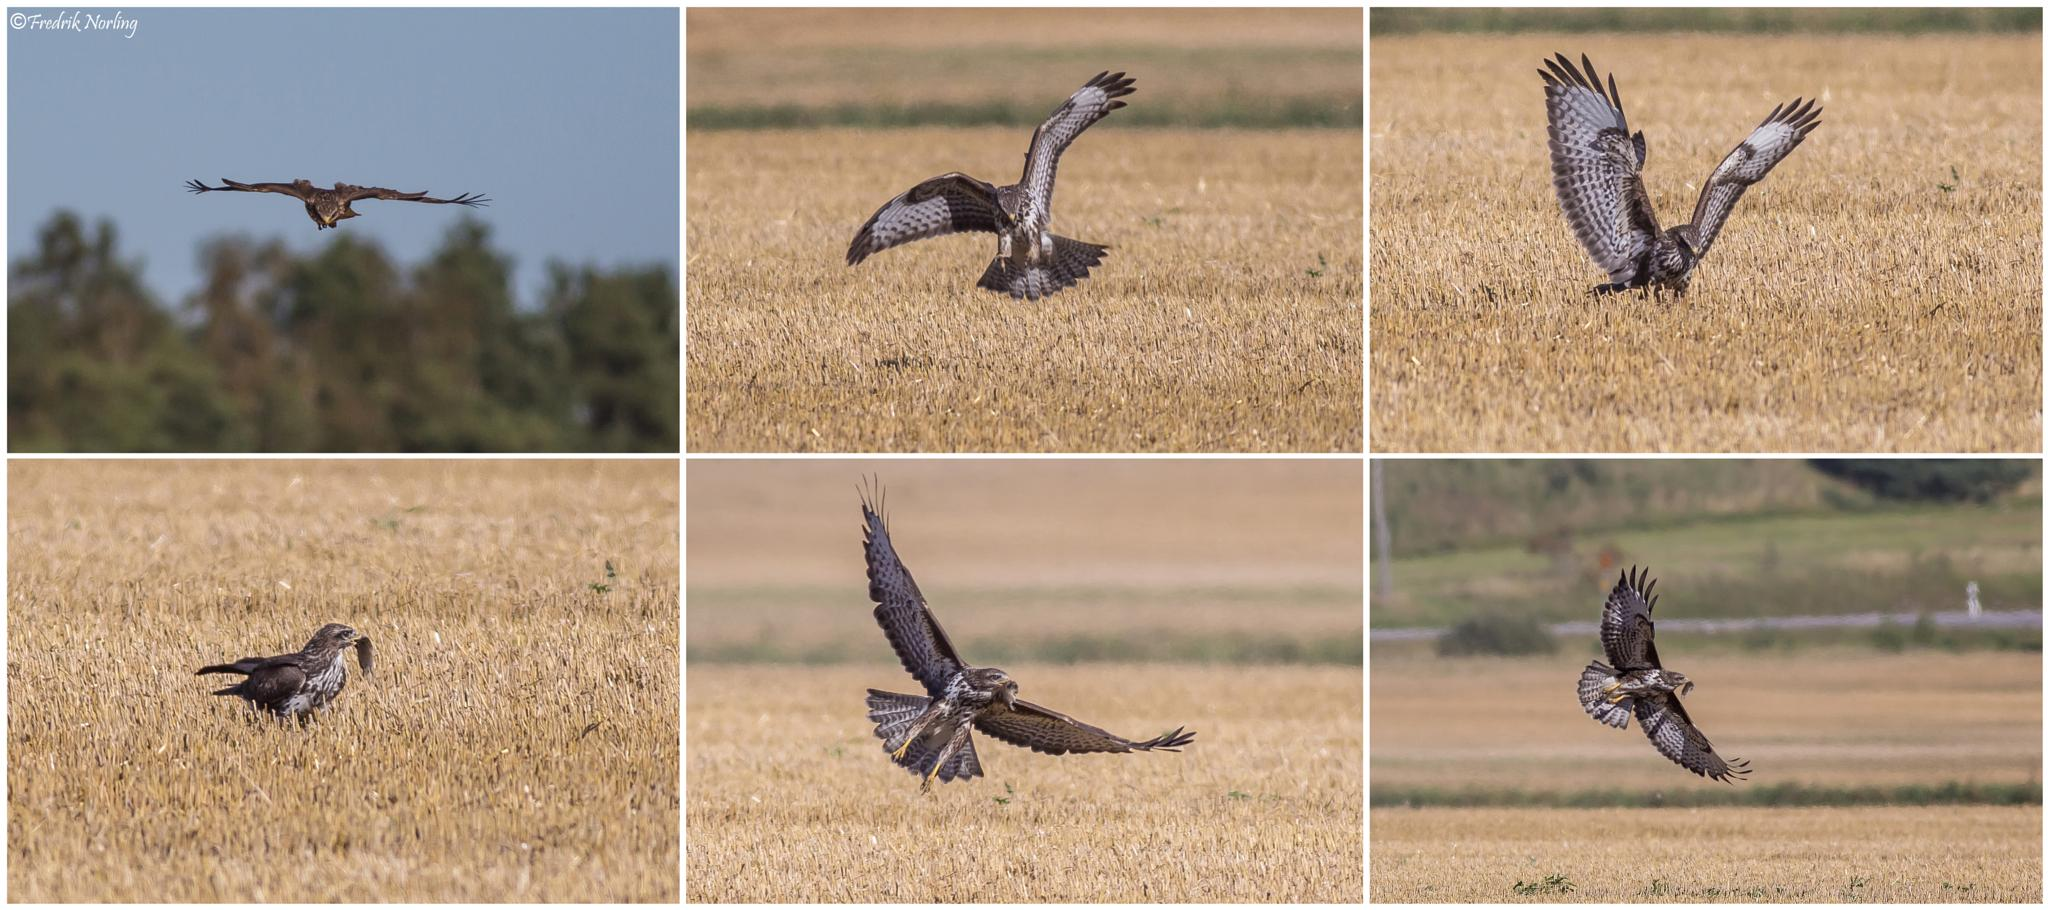 Buzzard catches a field mouse by Fredrik Norling